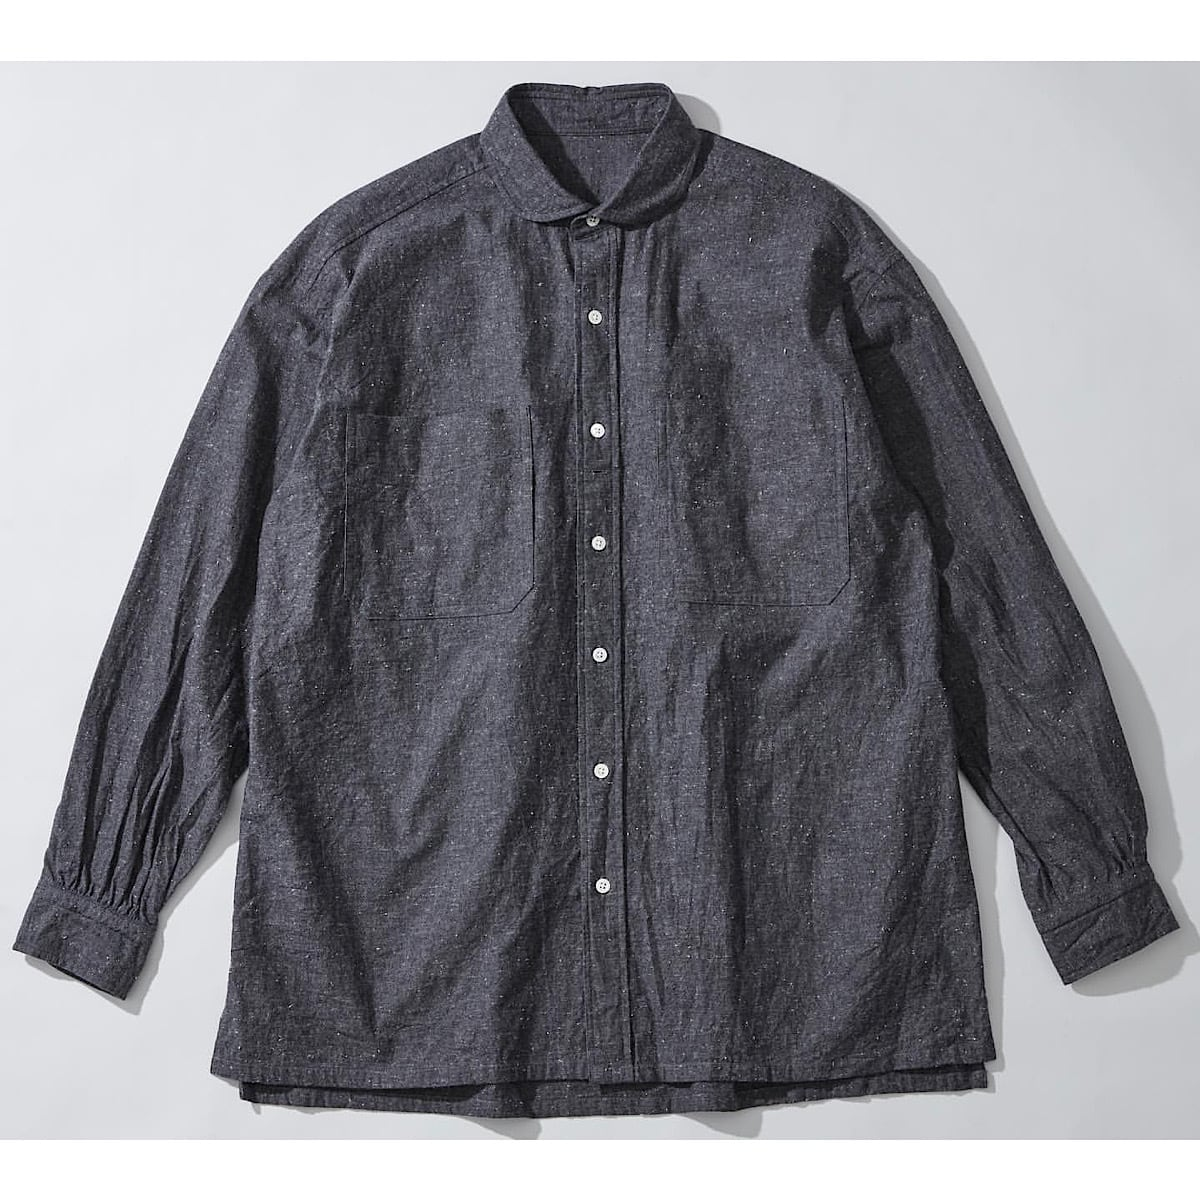 WIDE POCKET CHAMBRAY CHAIN SHIRT-WATCH CHAIN ITEM